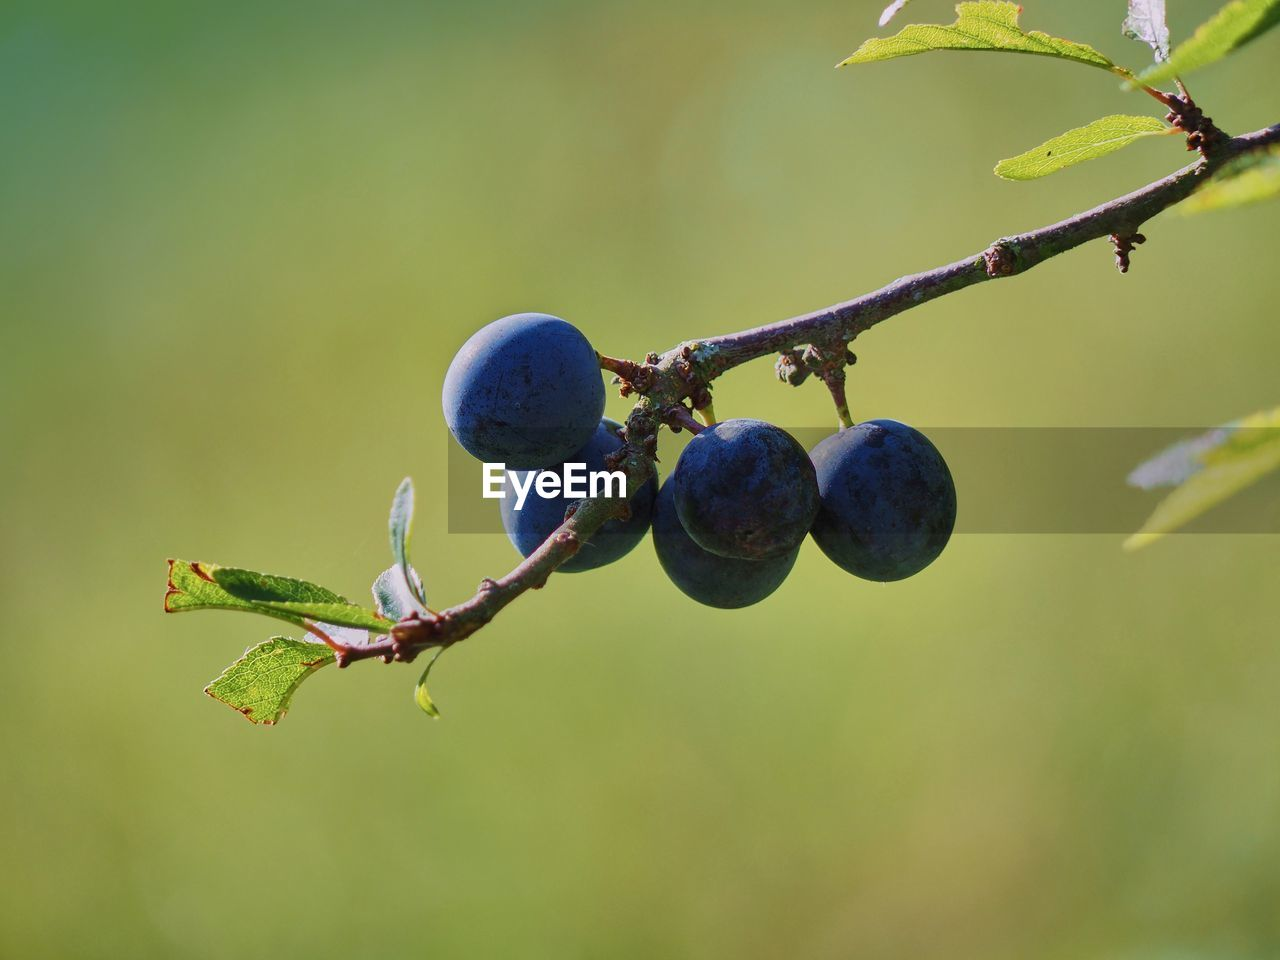 growth, plant, fruit, nature, healthy eating, food and drink, no people, focus on foreground, food, close-up, freshness, tree, day, branch, berry fruit, green color, outdoors, wellbeing, beauty in nature, plant part